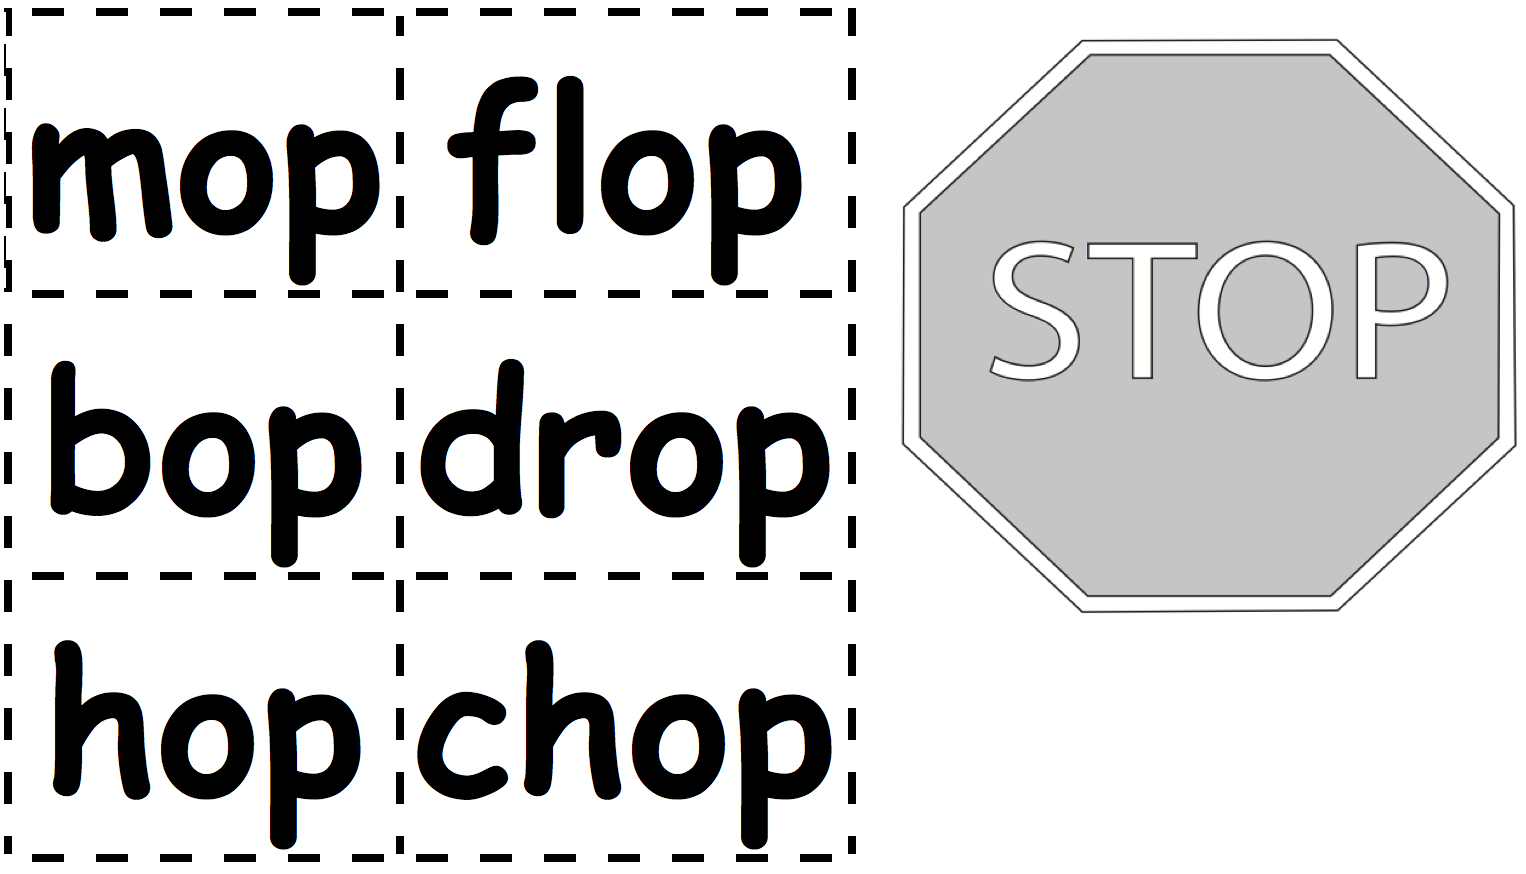 action-cards-and-stop-sign